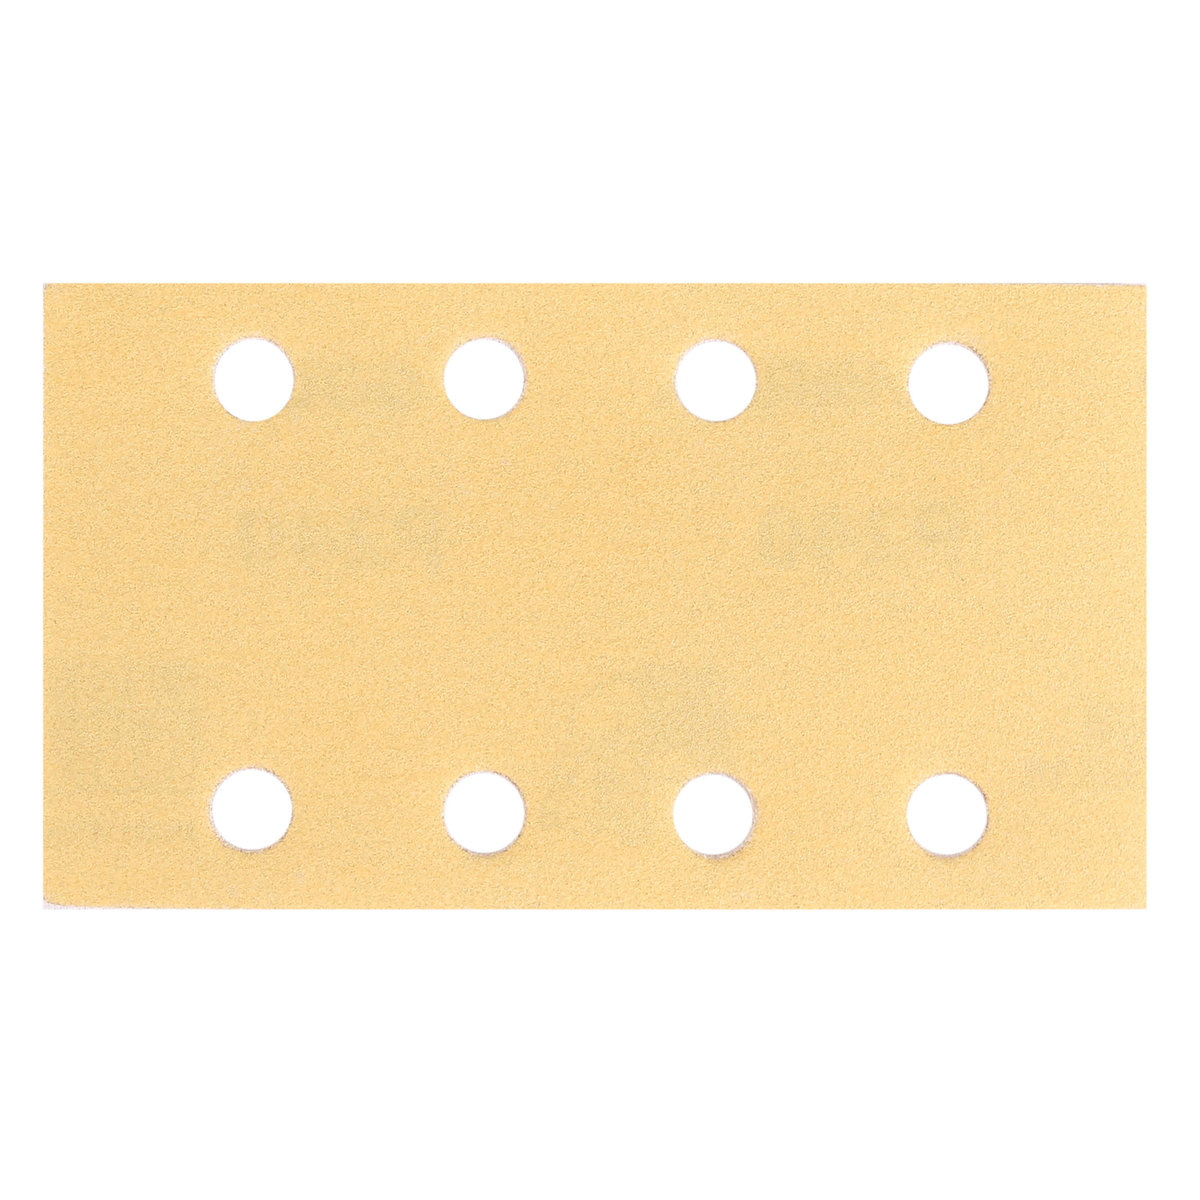 """View a Larger Image of GOLD 3""""x5"""" Grip Sandpaper, 8H P180, 50 Sheets/Box"""